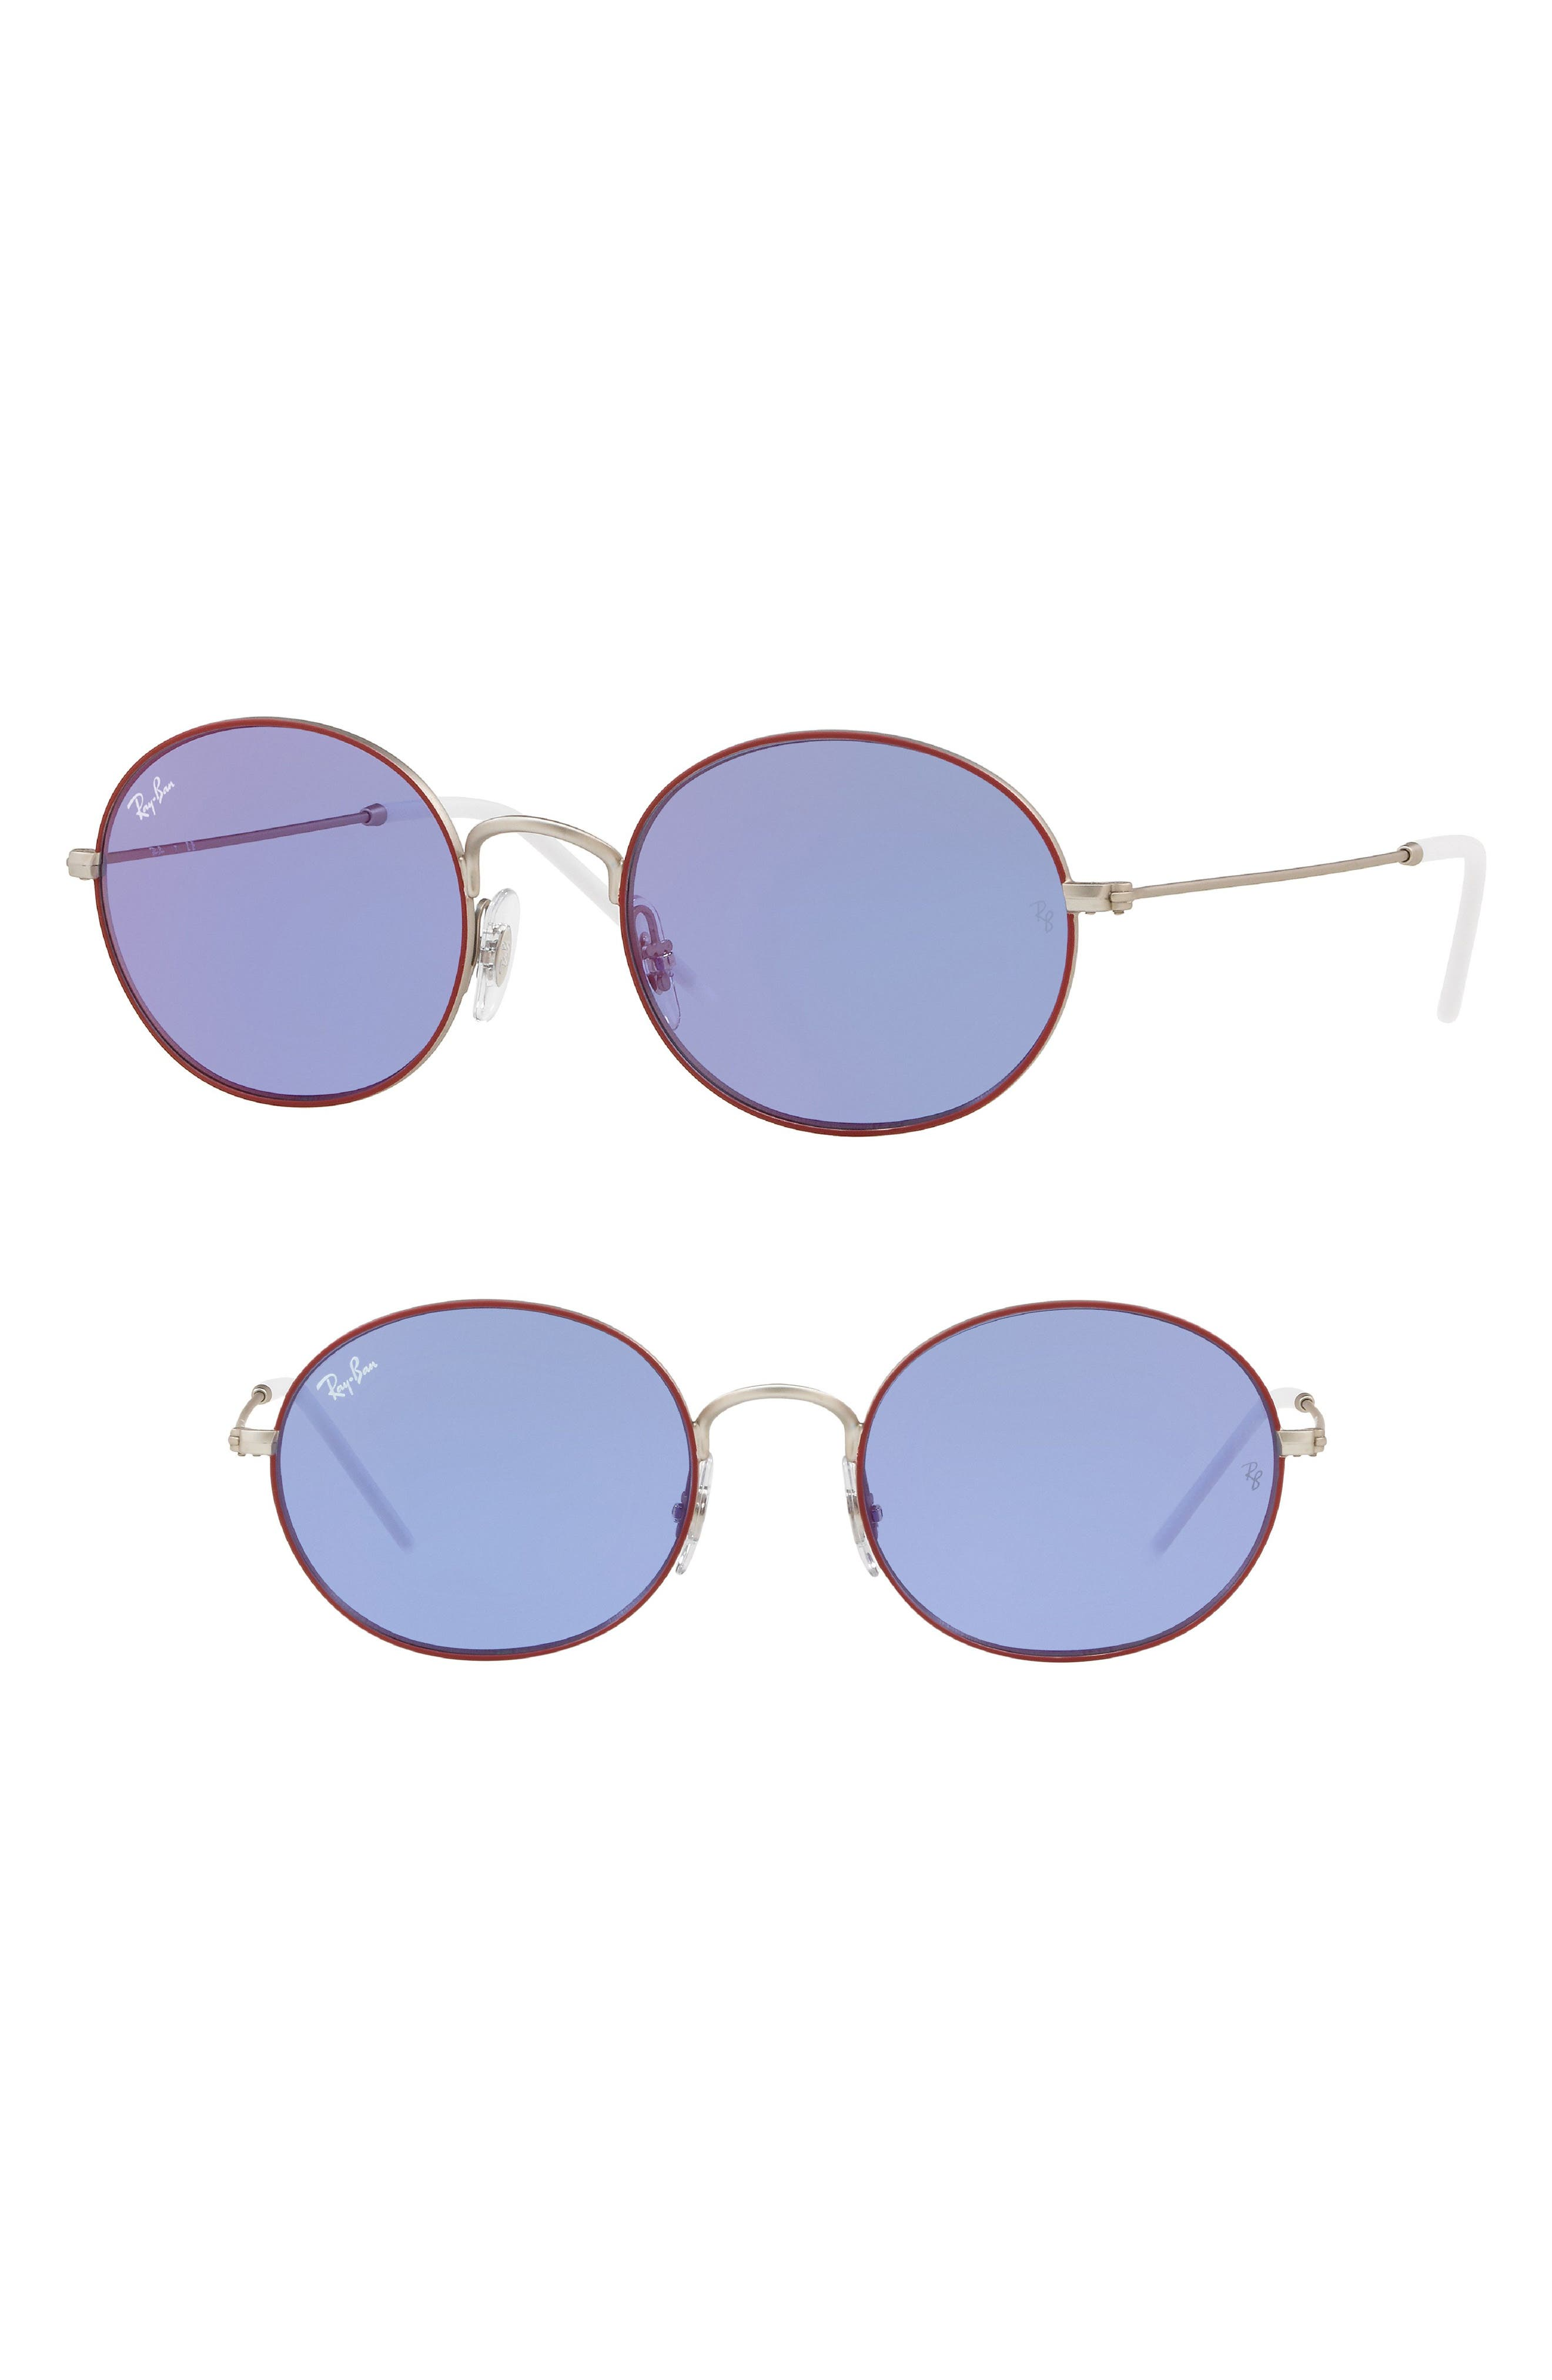 Youngster 53mm Oval Sunglasses,                             Main thumbnail 1, color,                             Purple/ Red Mirror